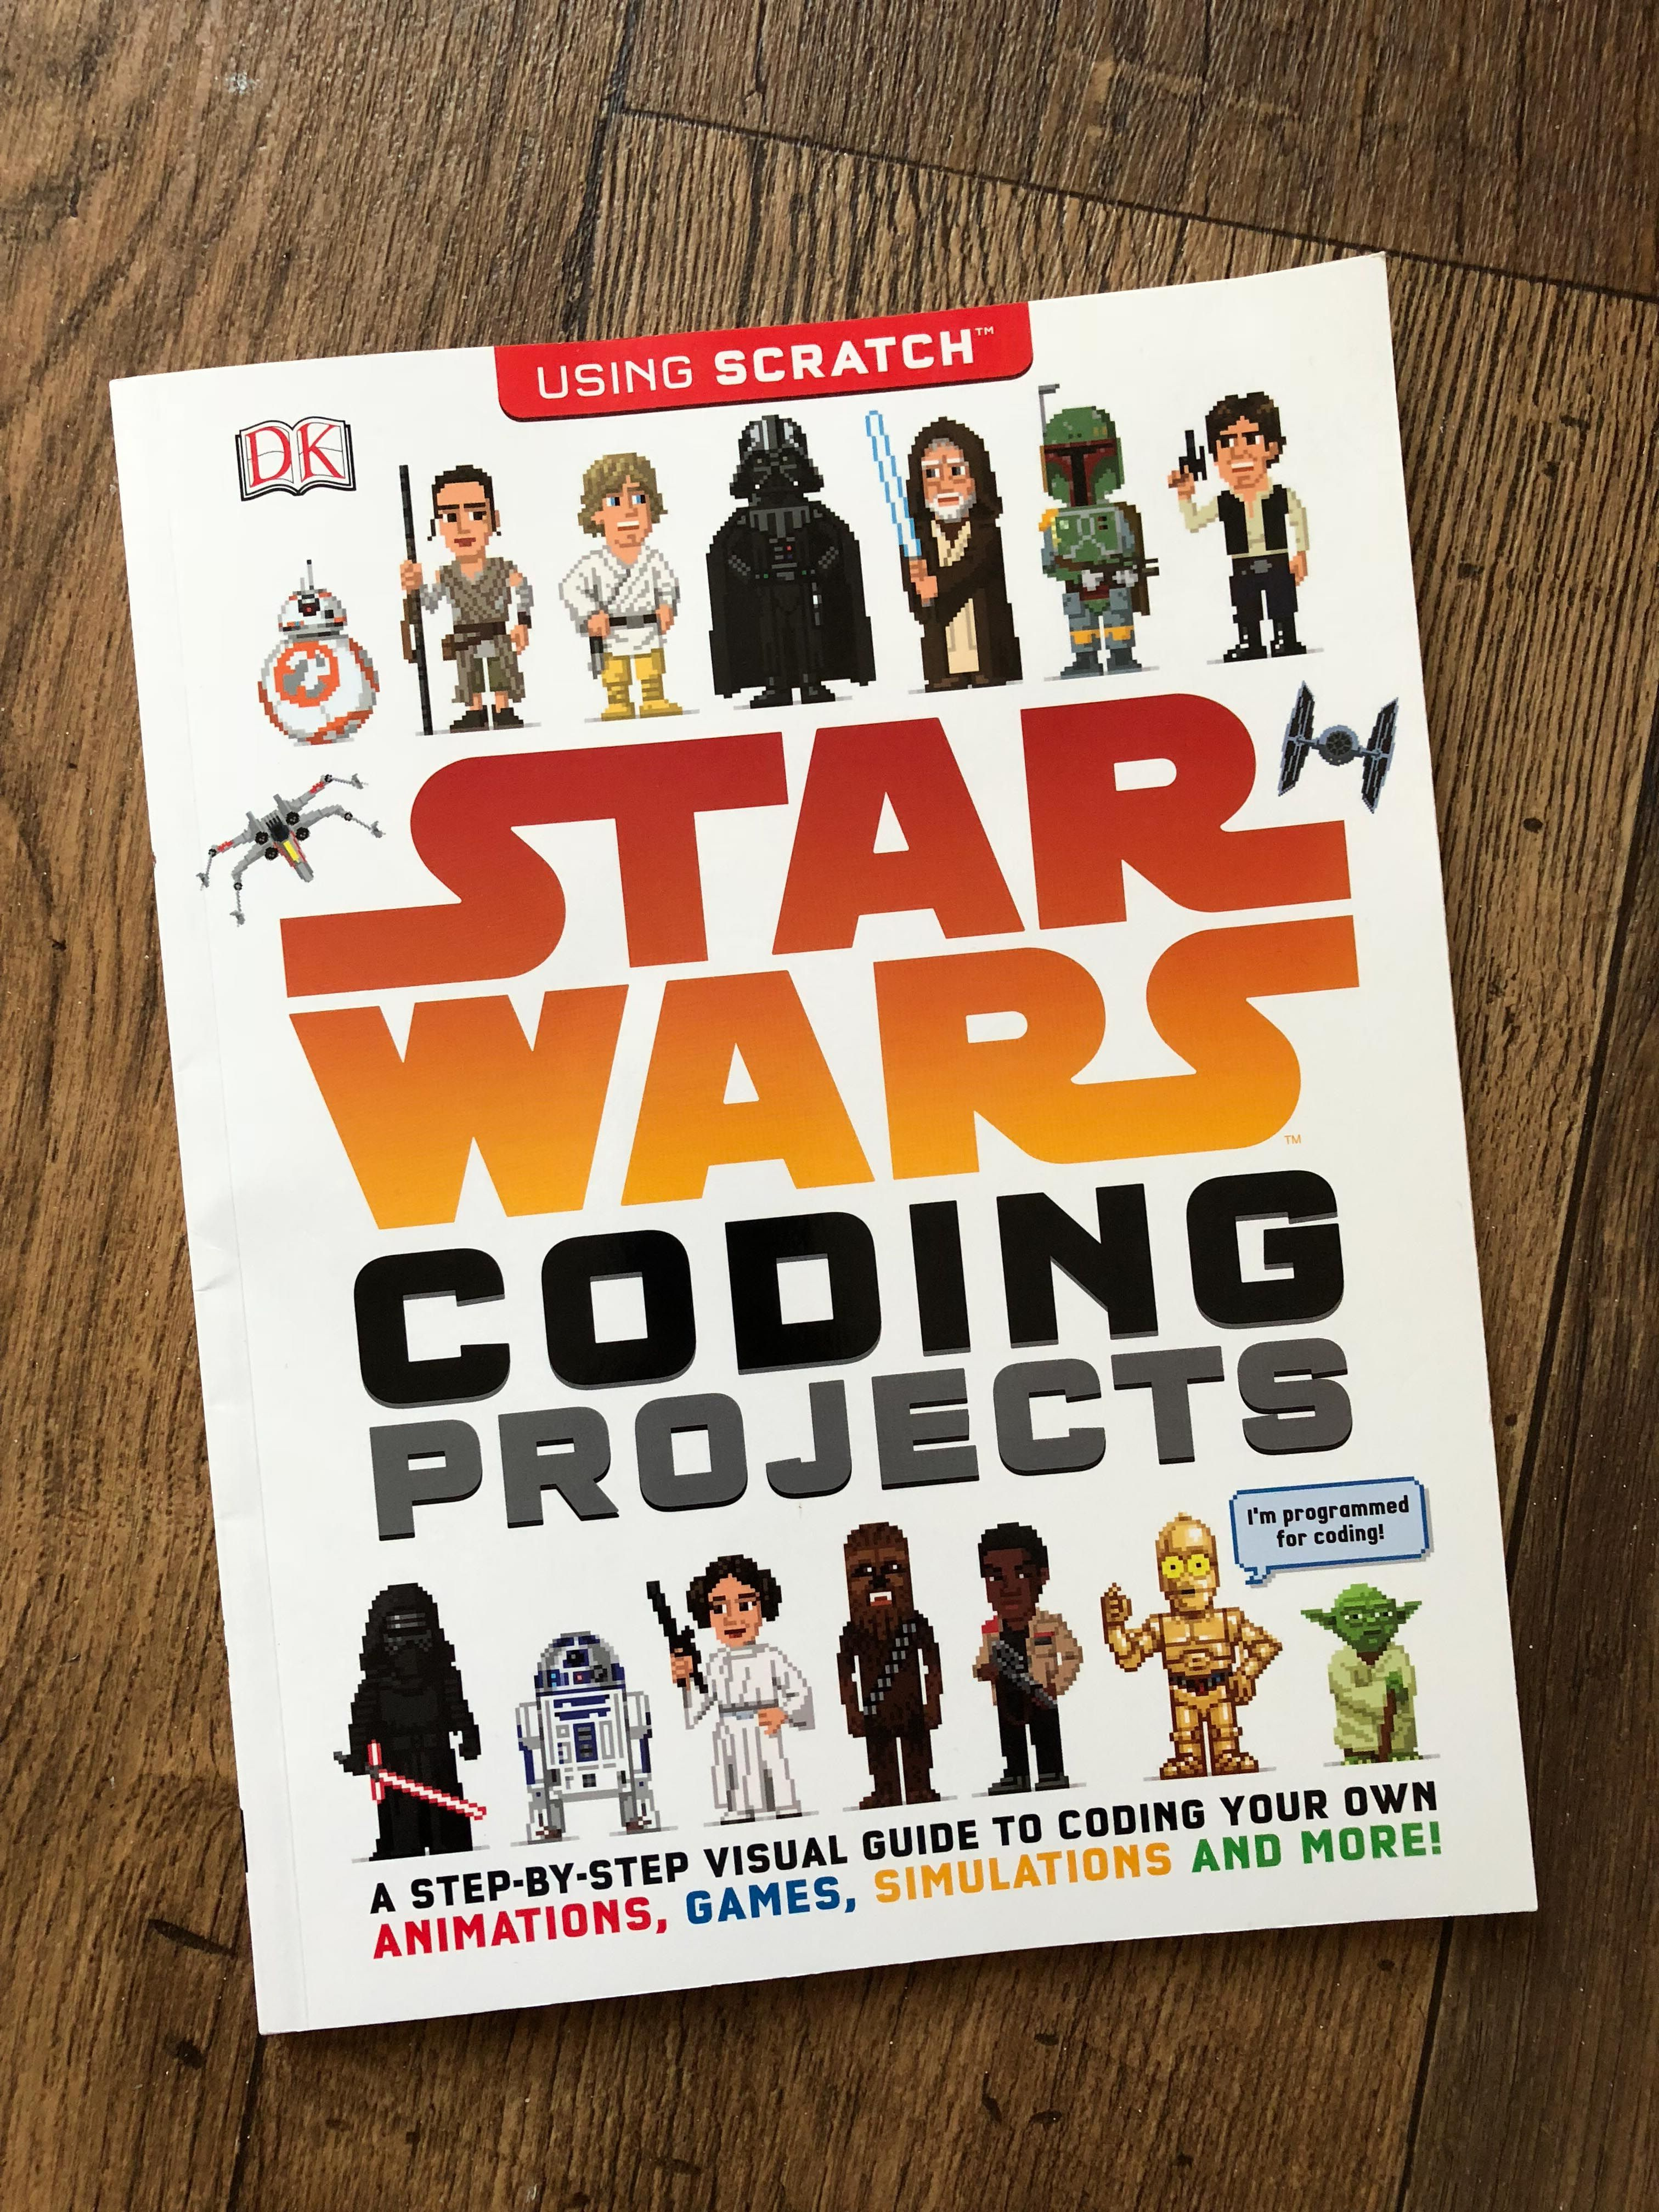 Star Wars Coding Projects {book review} | info | Coding